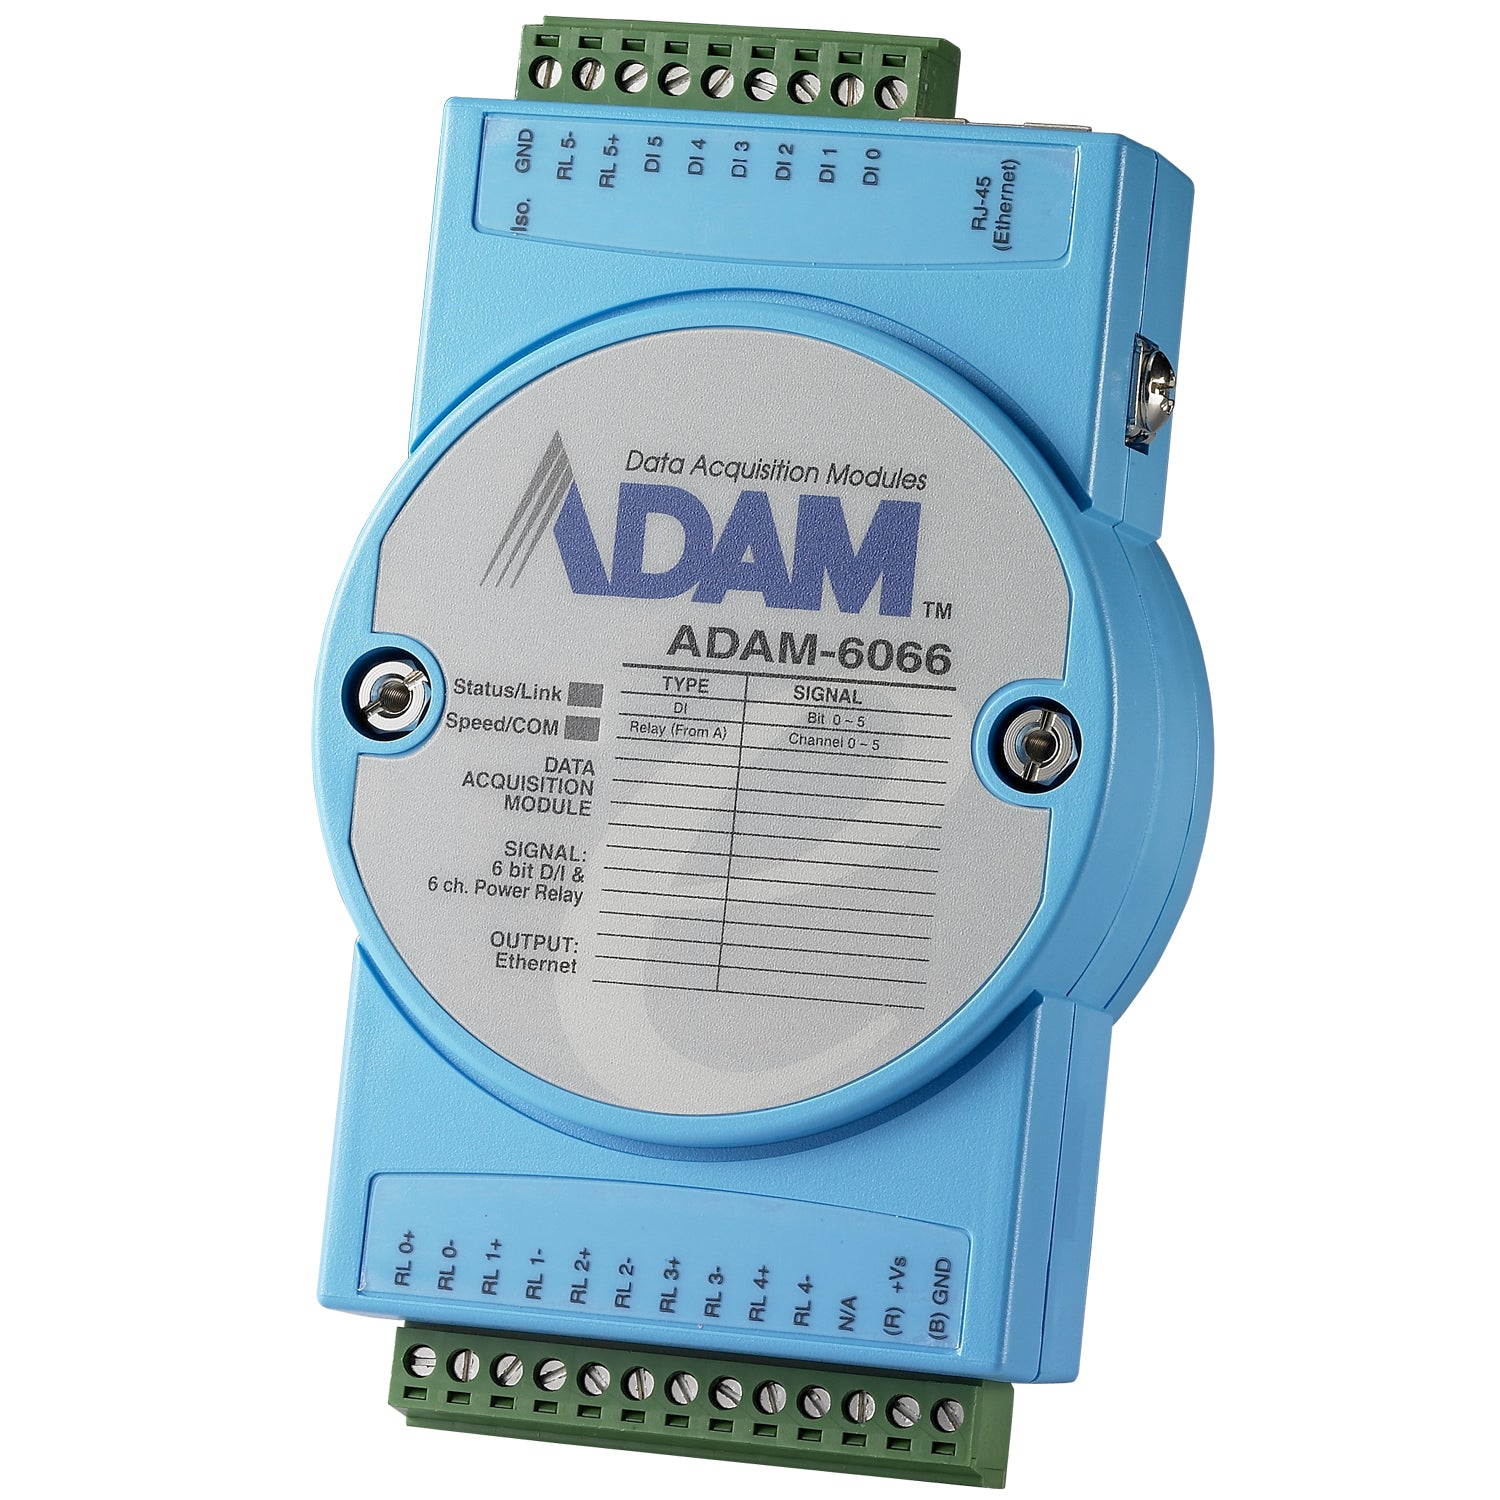 6 Isolated Digital Inputs & 6 Power Relays Module ADAM 6066